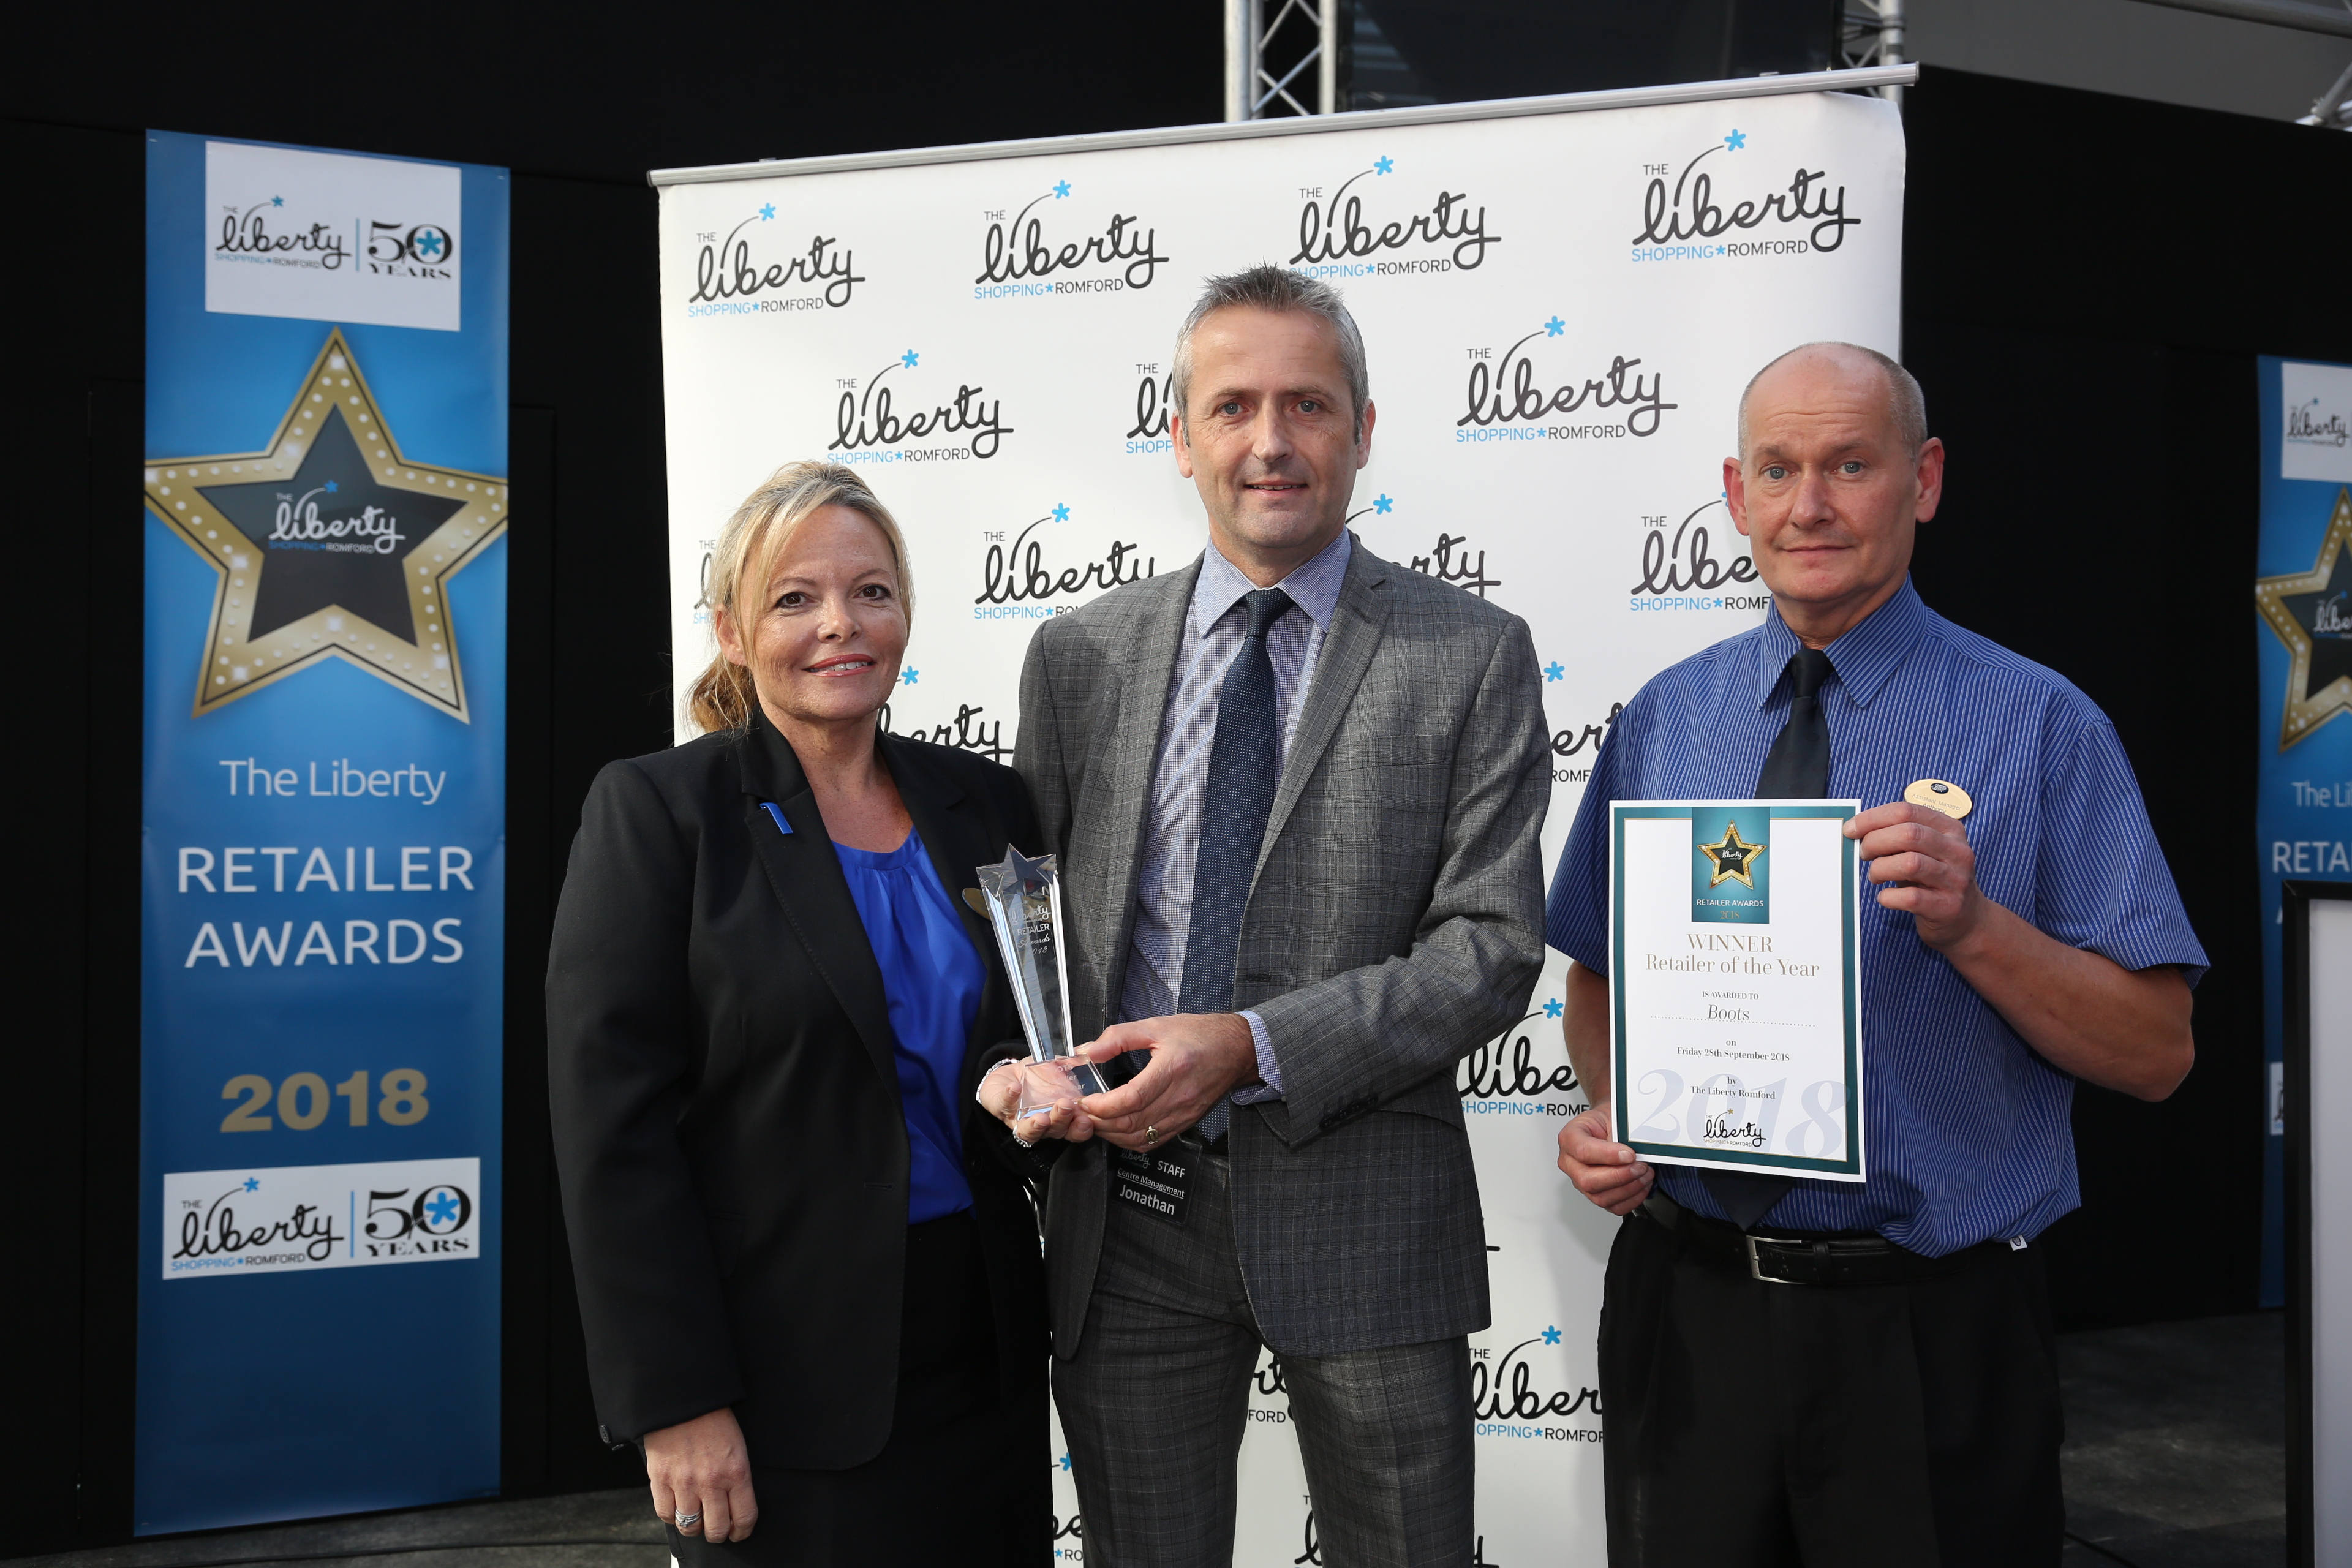 Image: S.Rowse. Retailer of the year award Winner: Belinda Pritchard from Boots, Centre Manager Jonathan Poole, winner: Tony Webb from, Boots